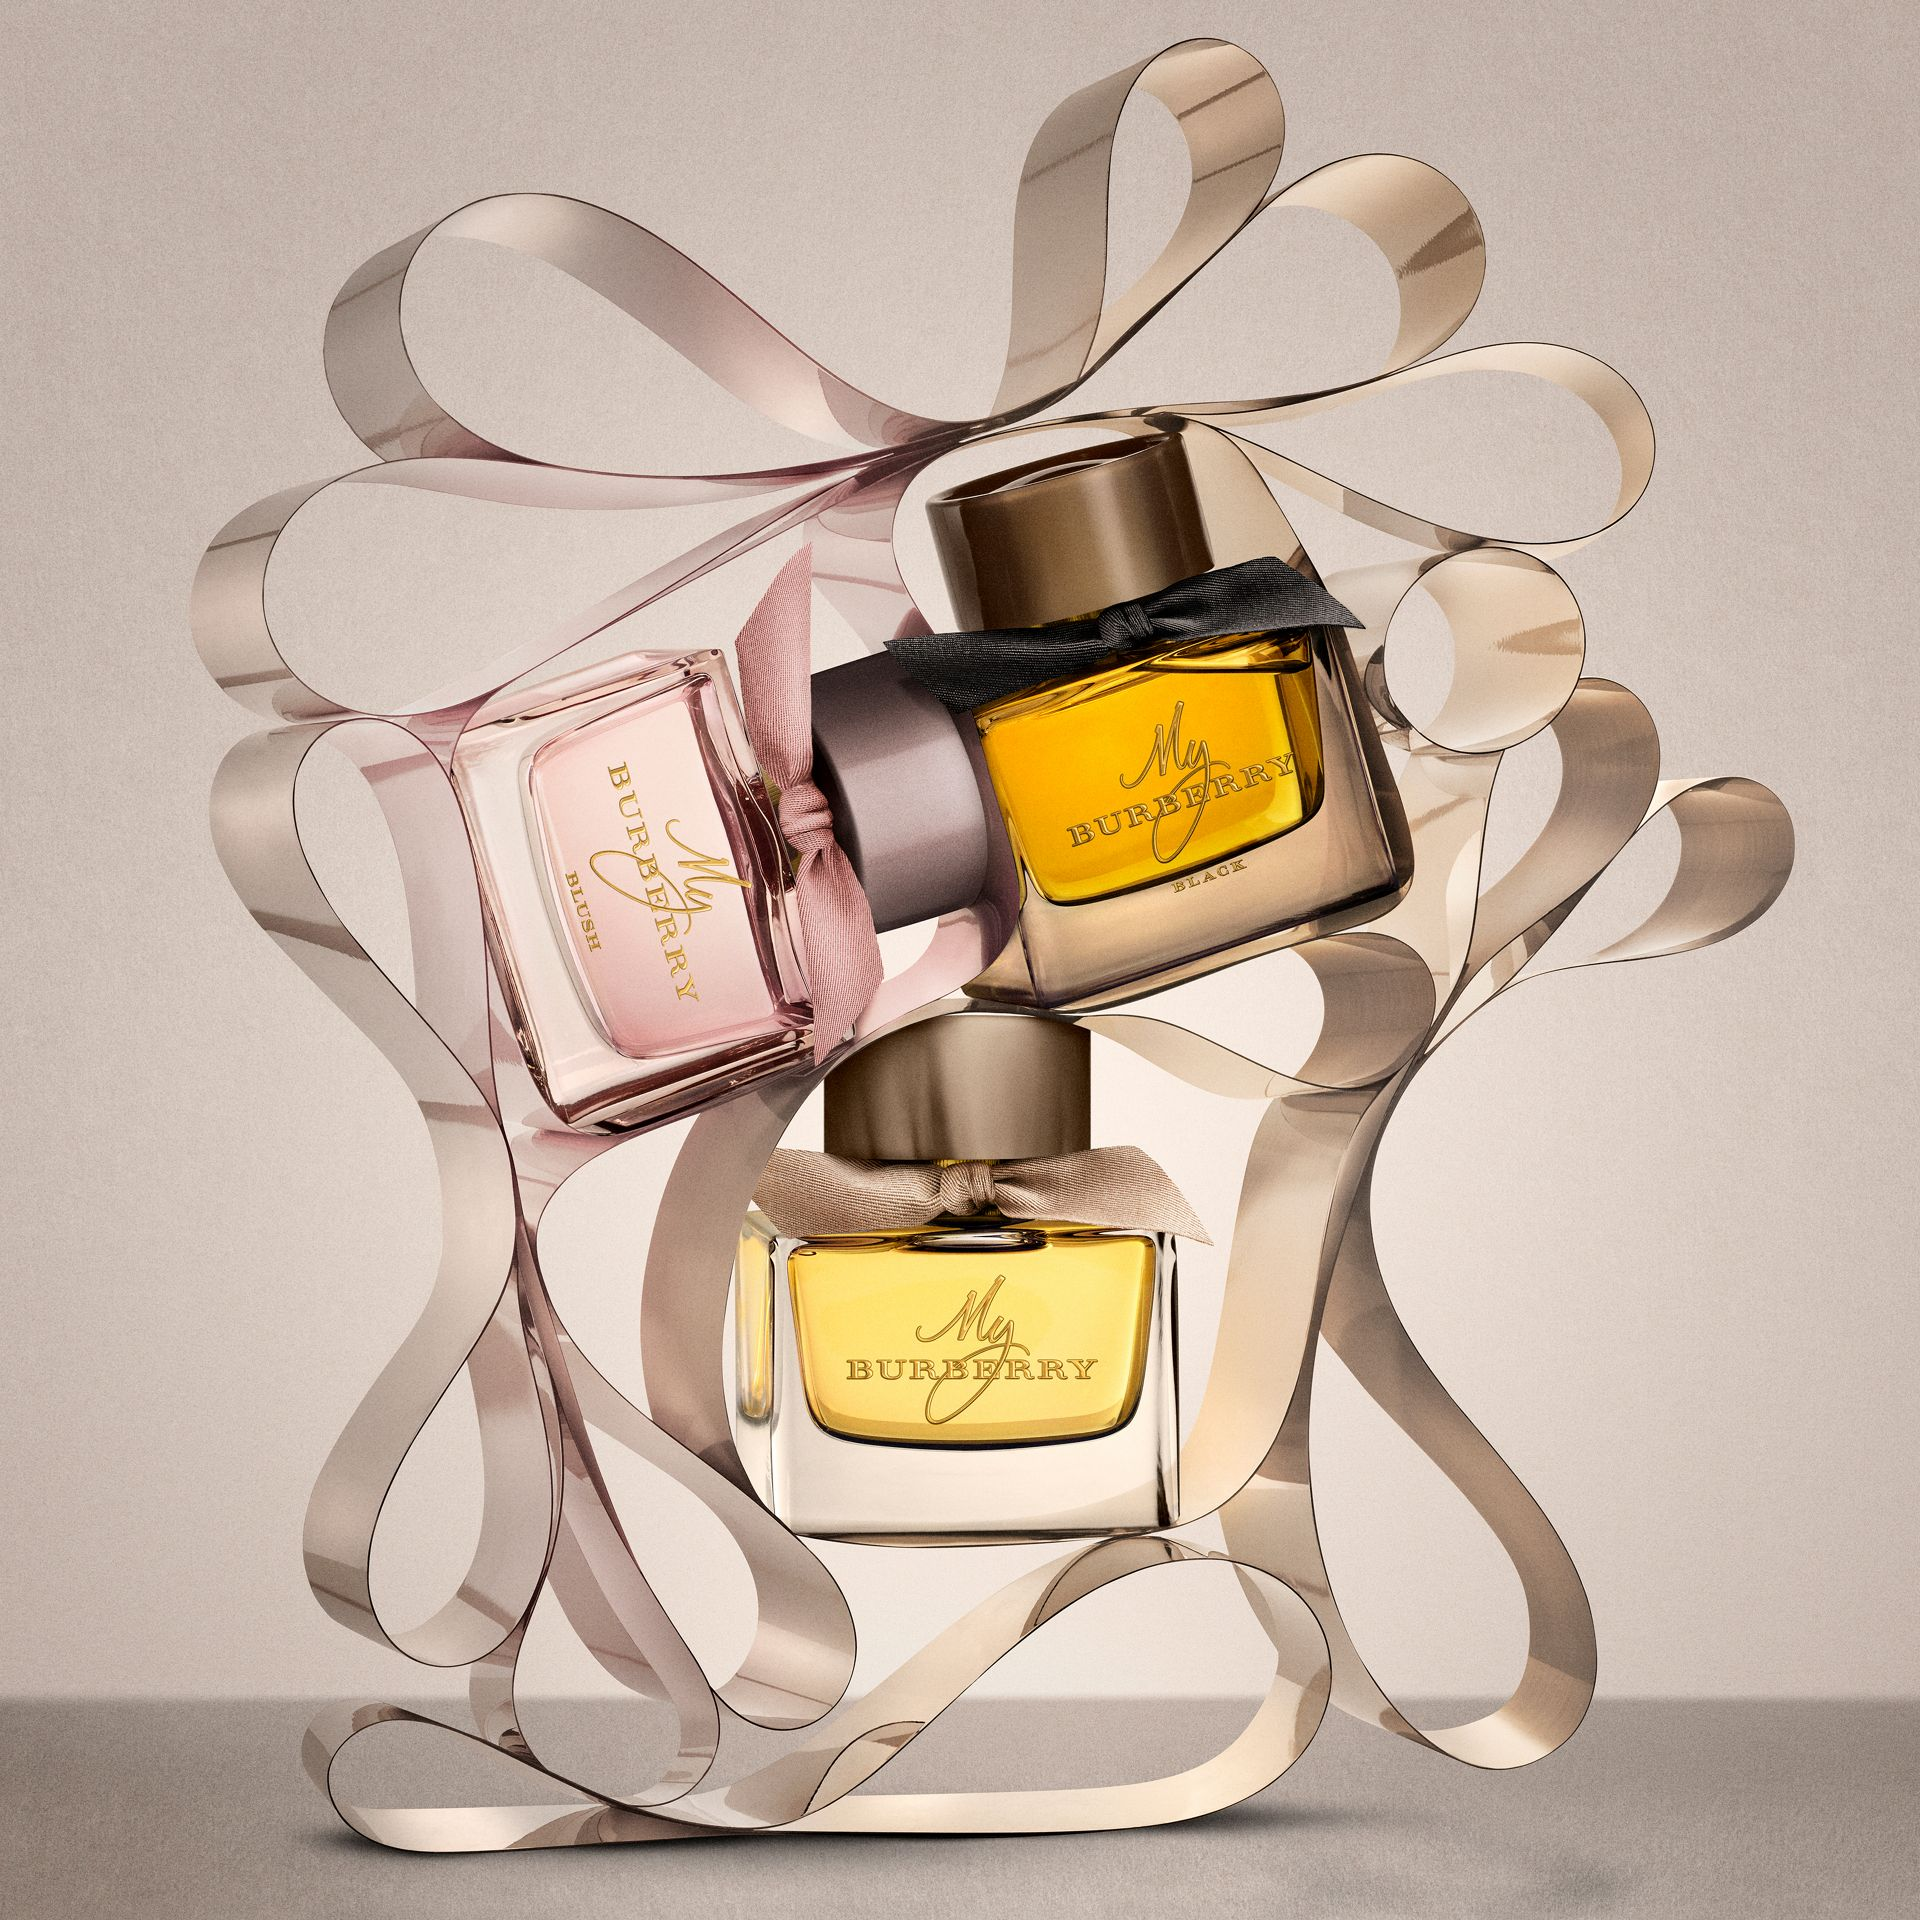 My Burberry Eau de Parfum Festive Luxury Set in No Colour - Women | Burberry - gallery image 2